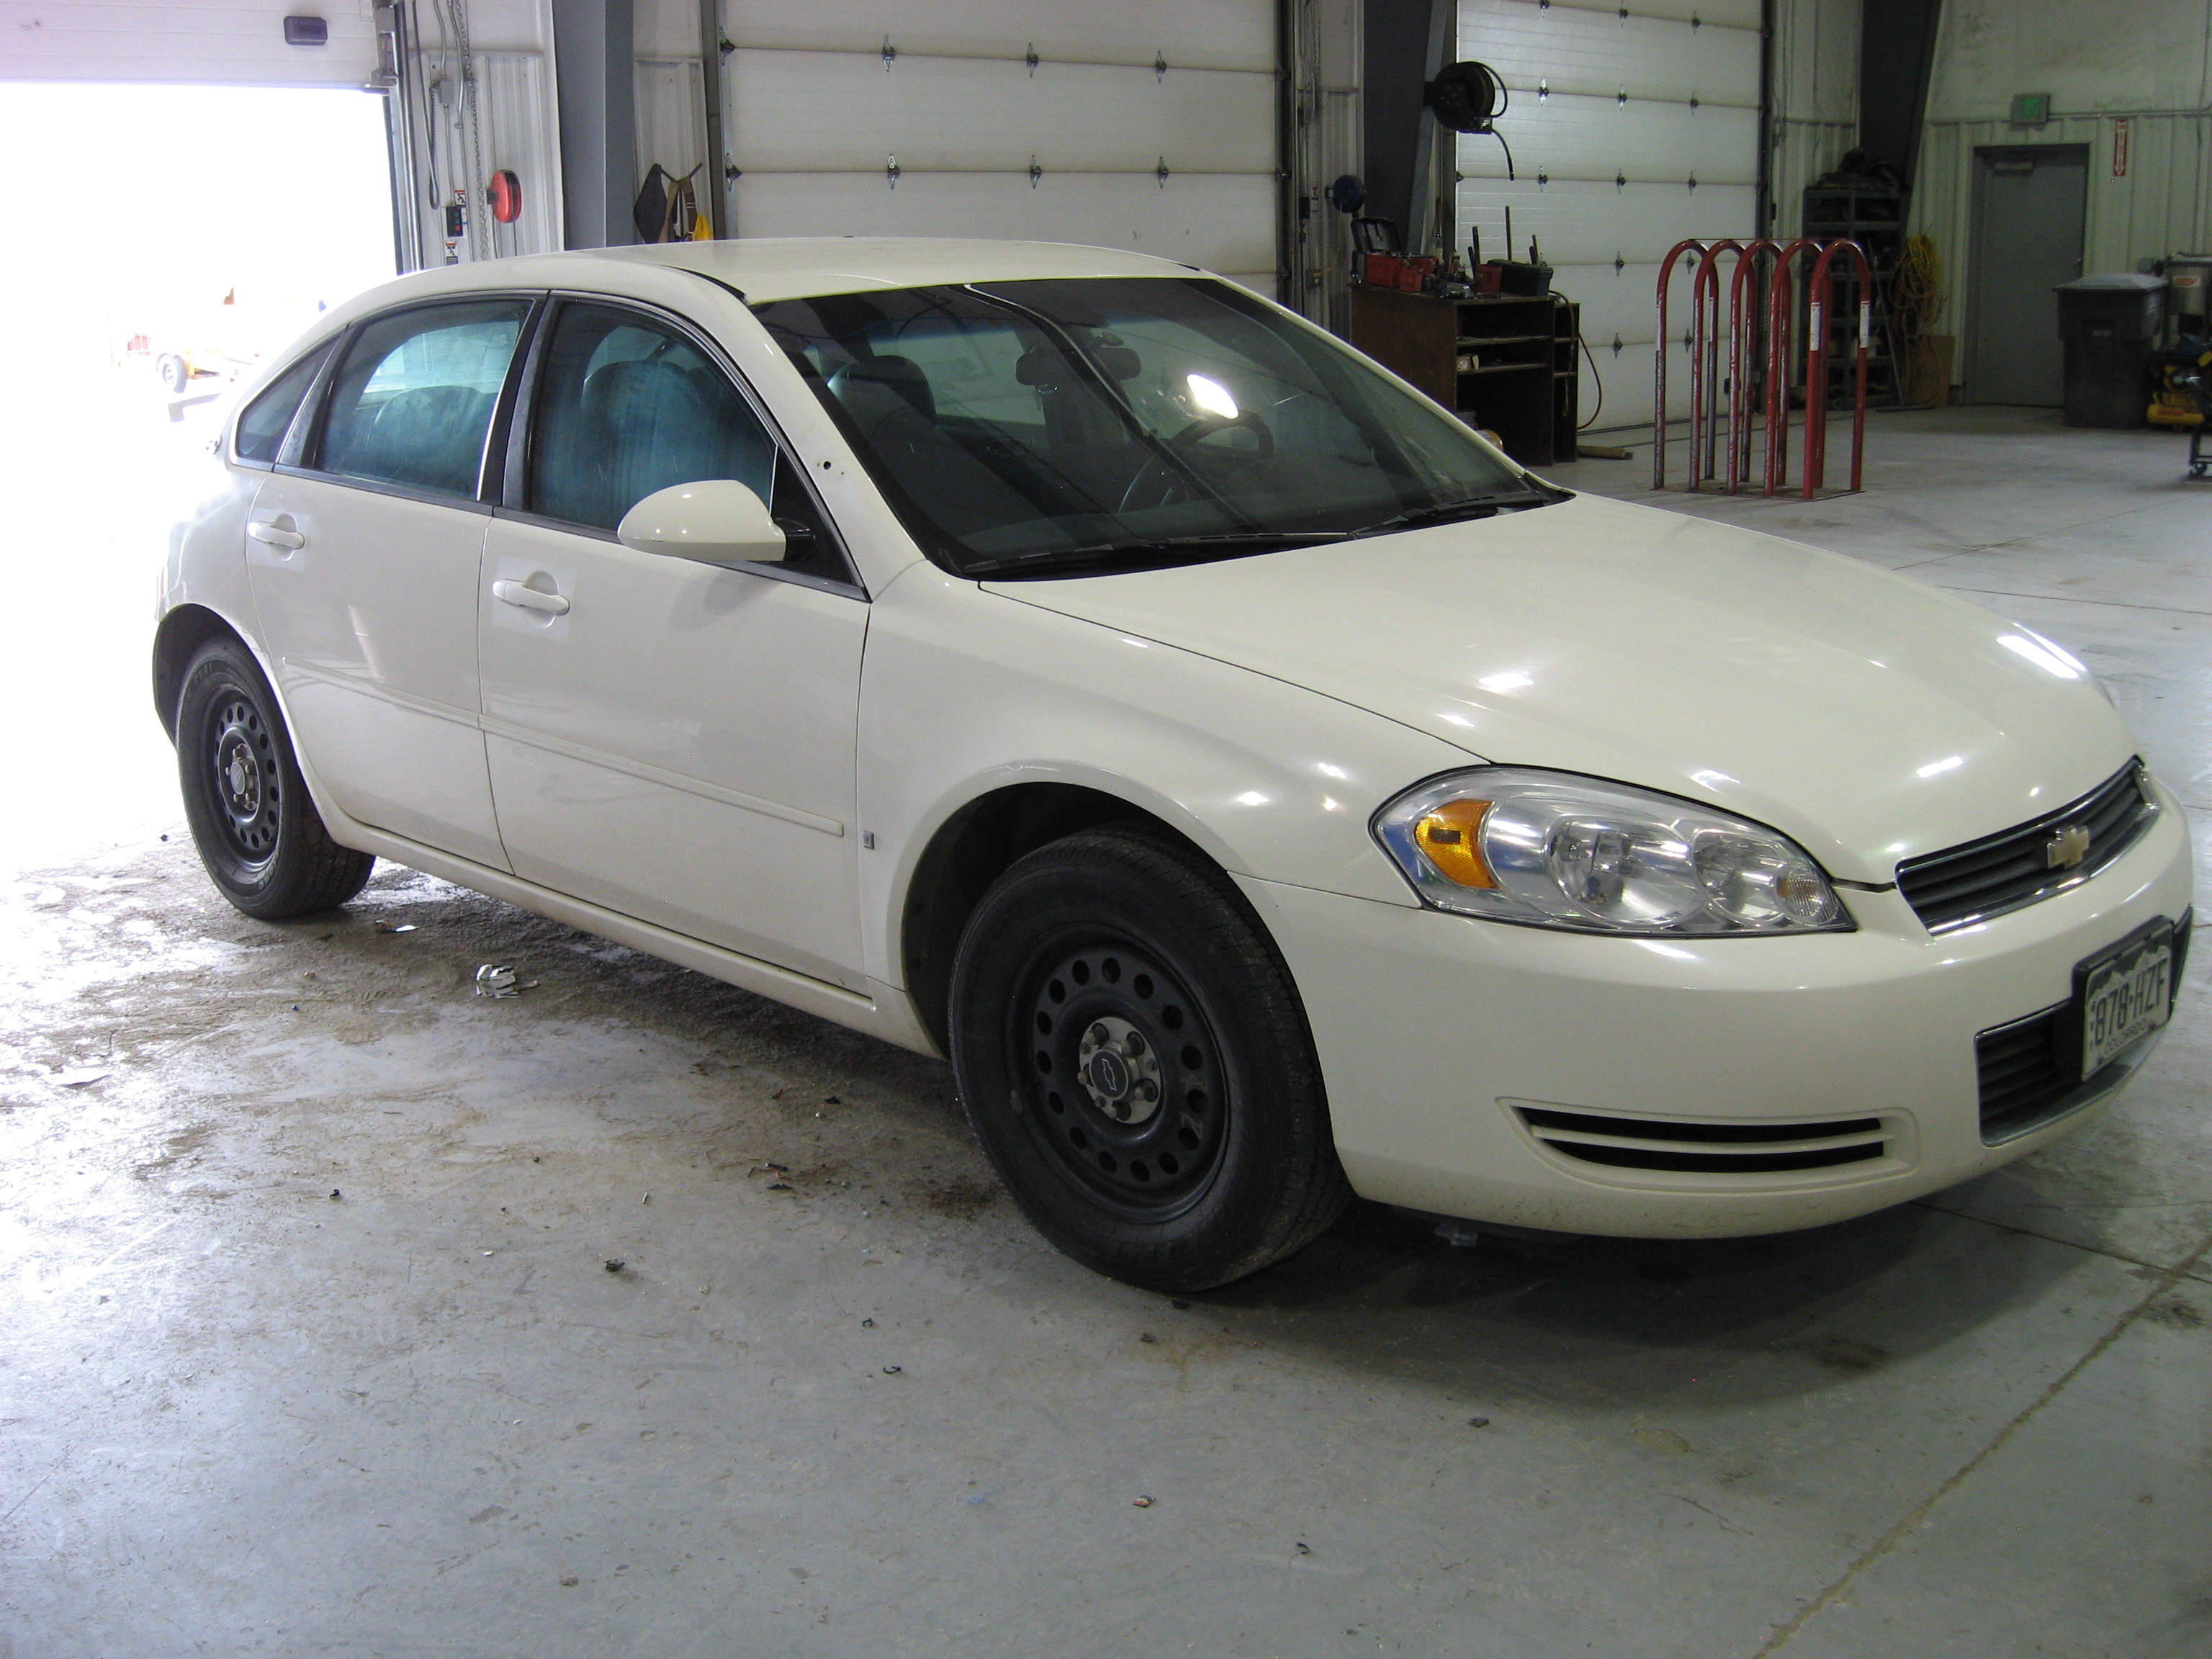 2007 Chevy Impala (White)